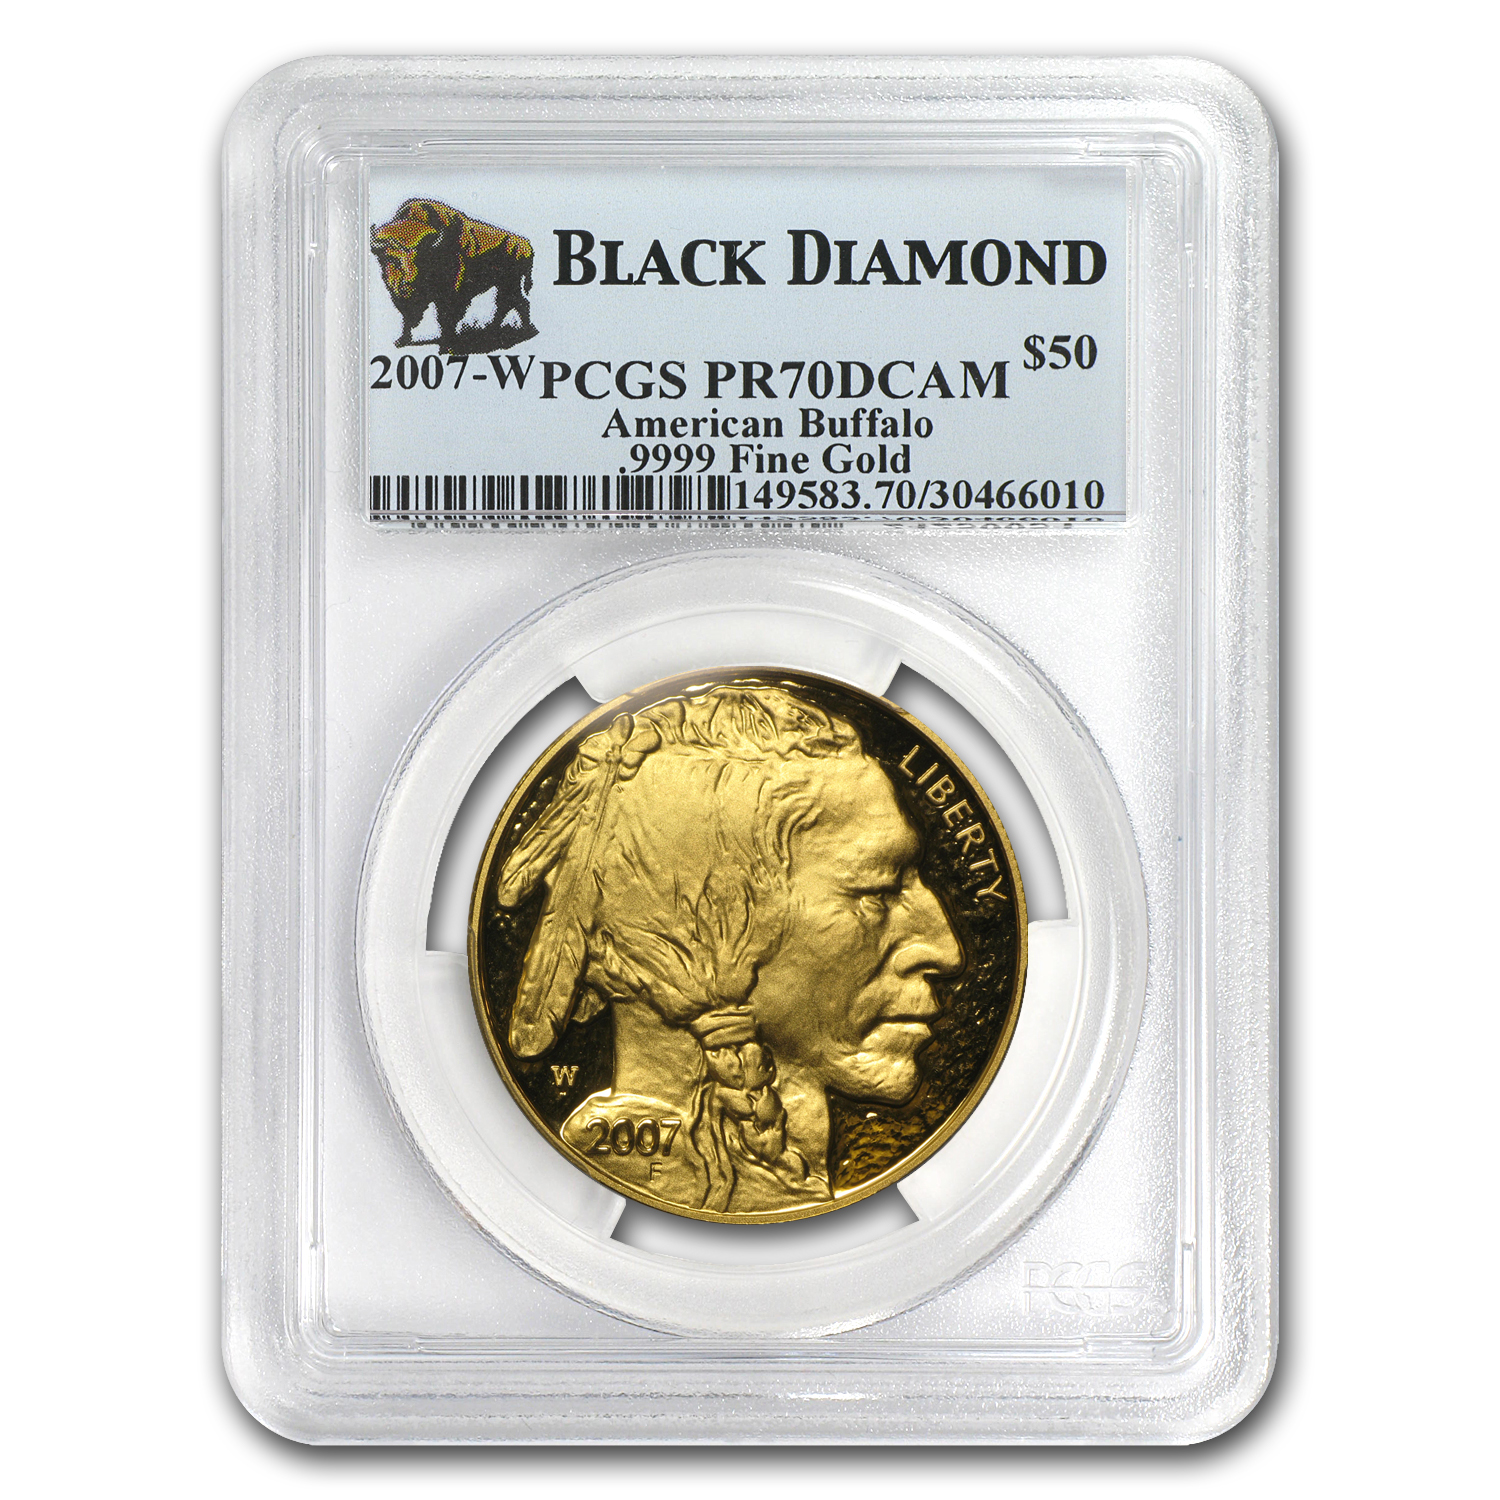 2007-W 1 oz Proof Gold Buffalo PR-70 PCGS (Black Diamond)